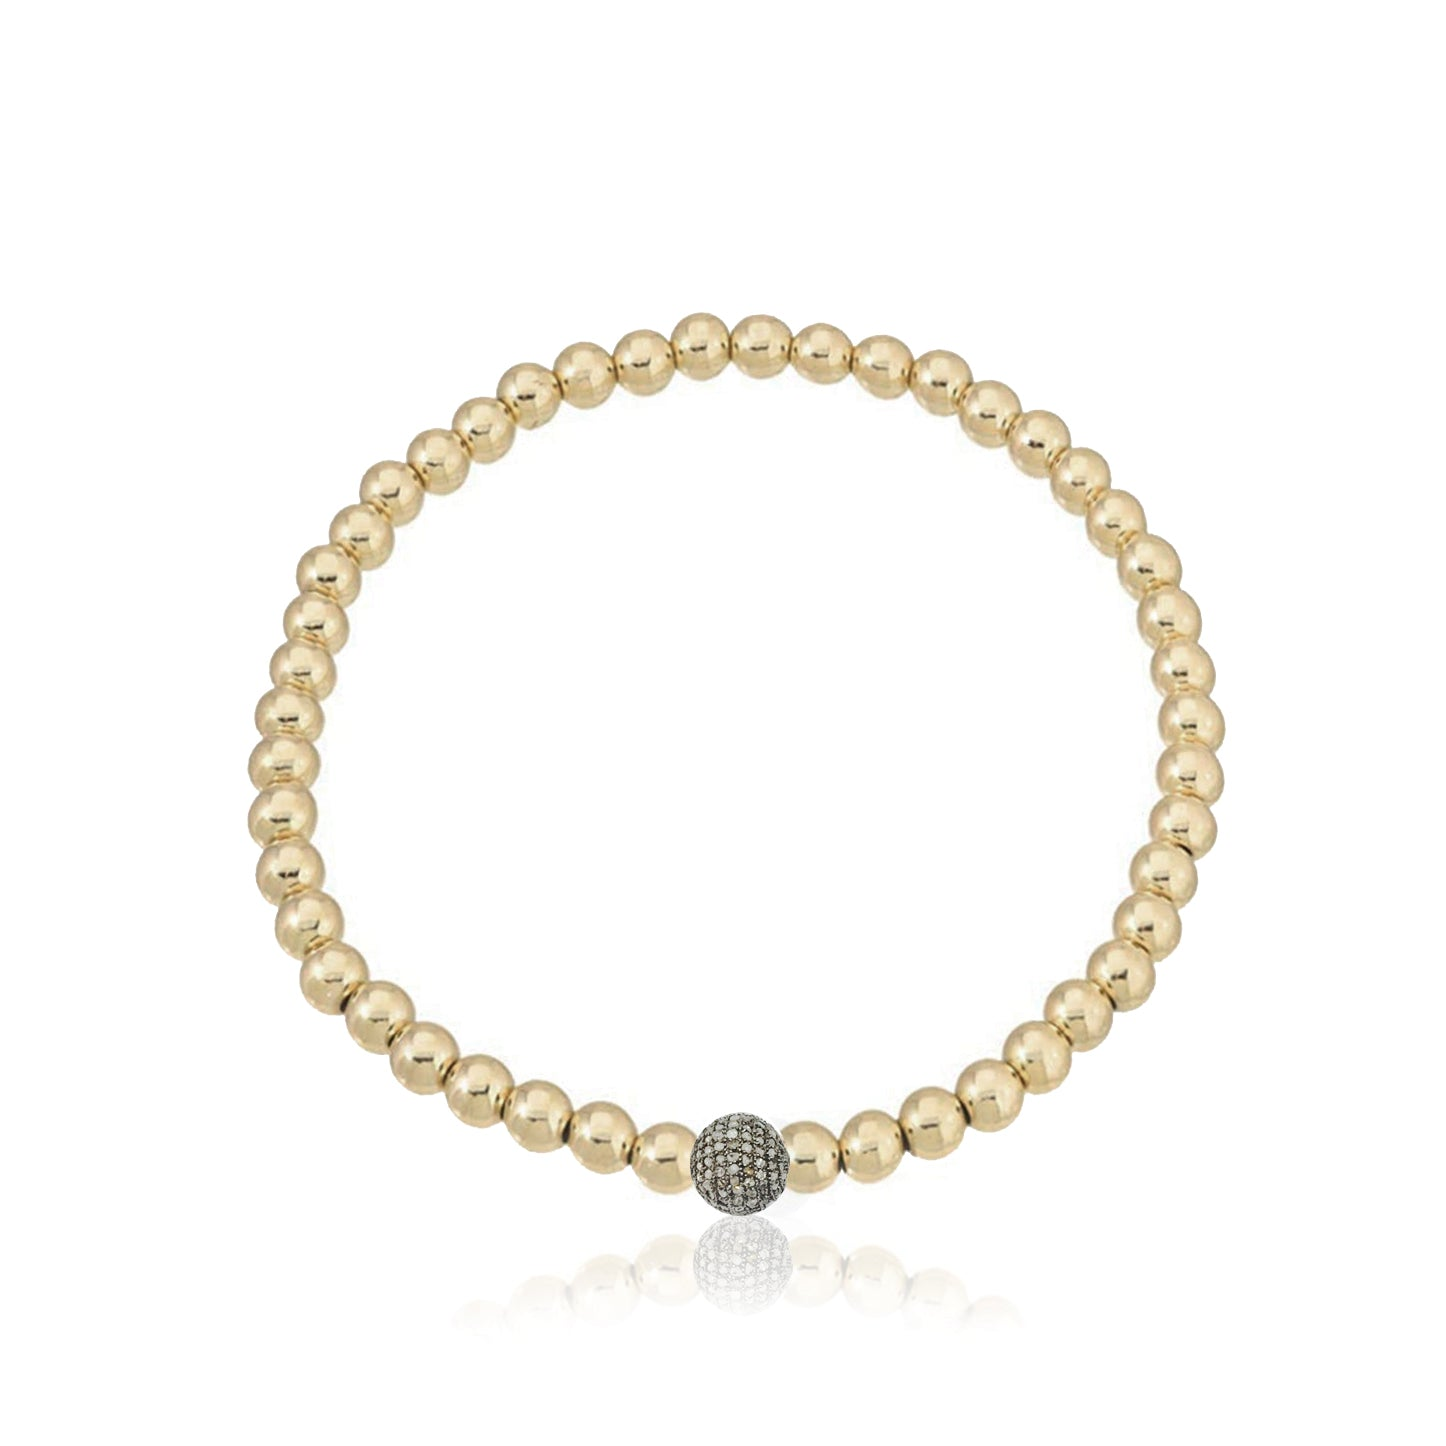 Gold Fill Beaded Bracelet with Diamond Bead